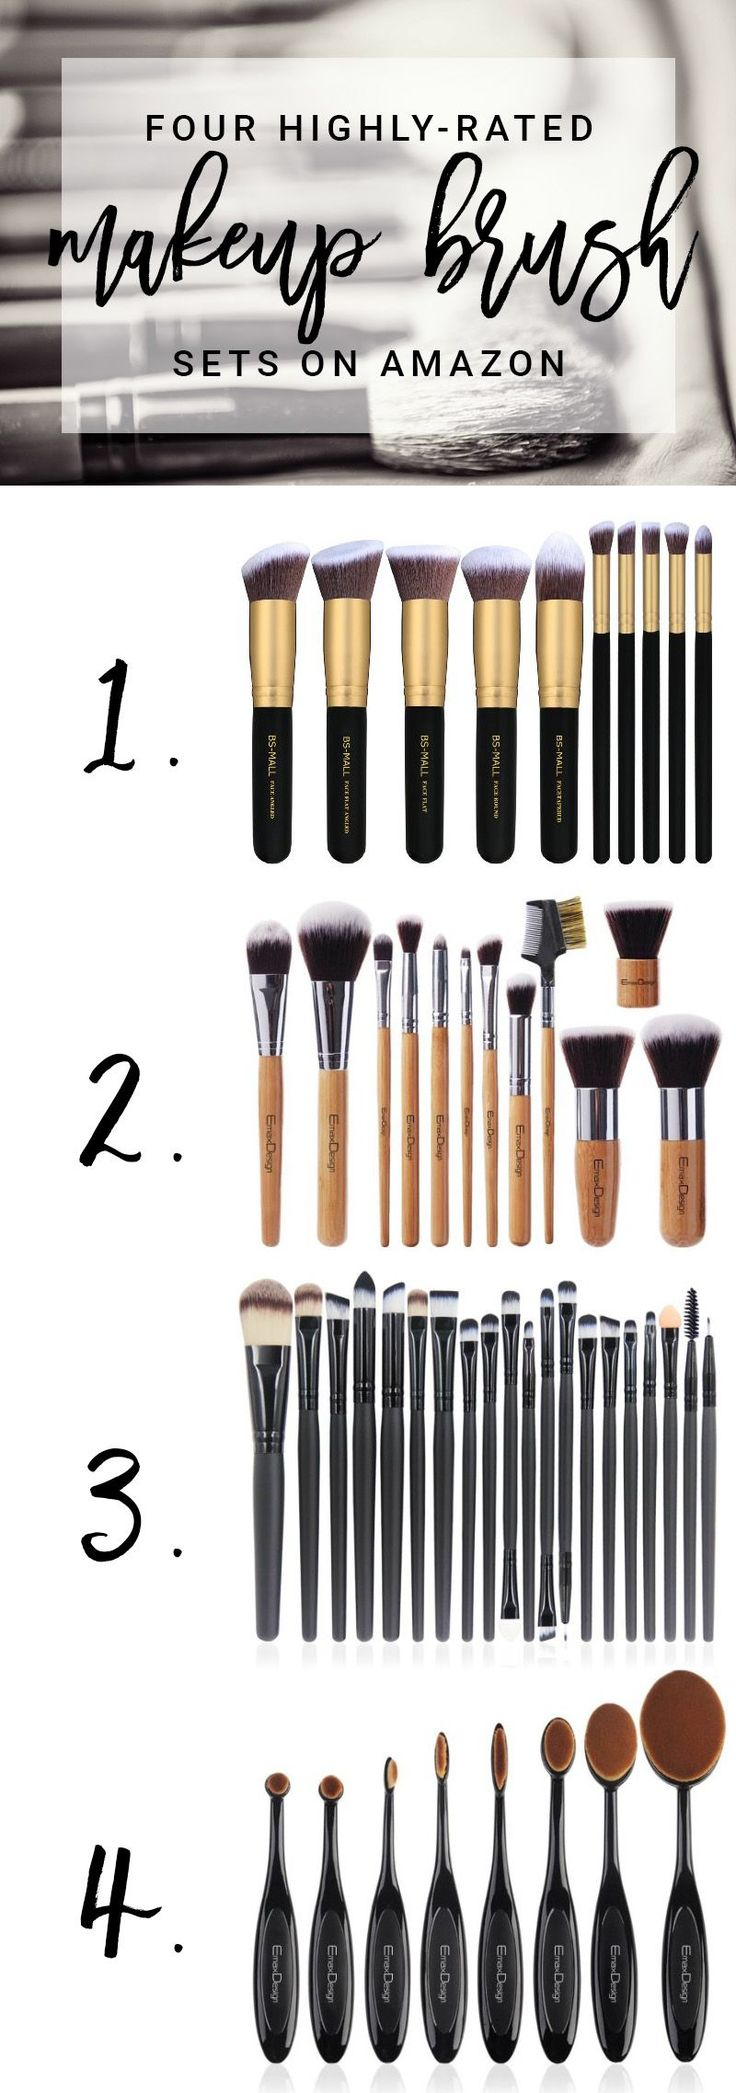 The best makeup brushes on Amazon